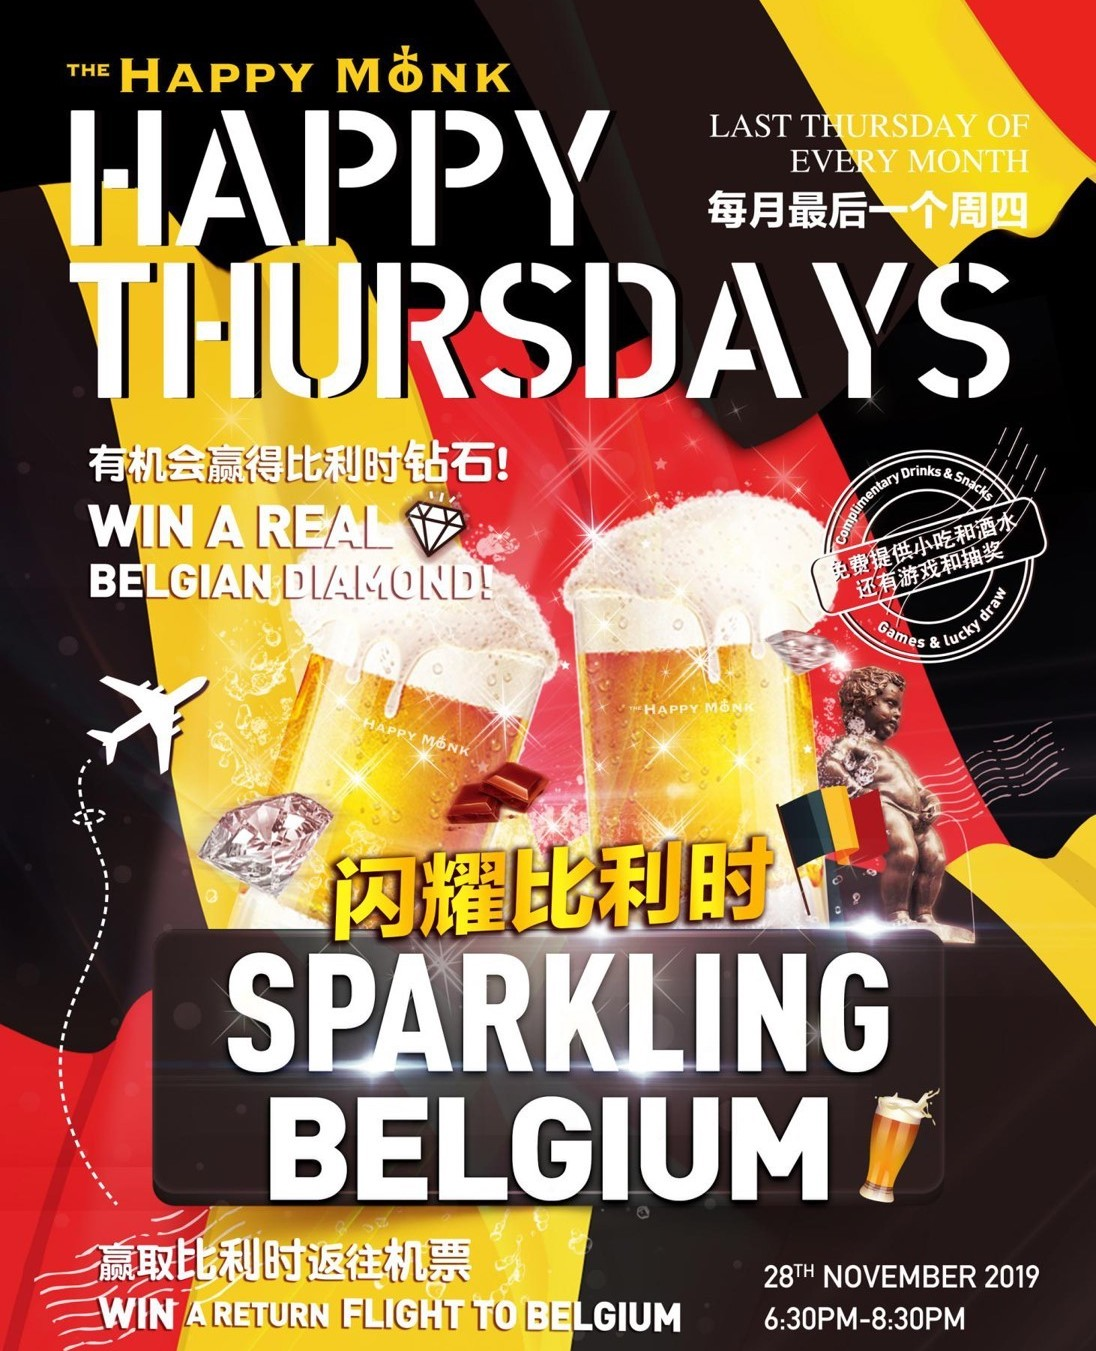 sparkling-belgium-happy-monk.jpg